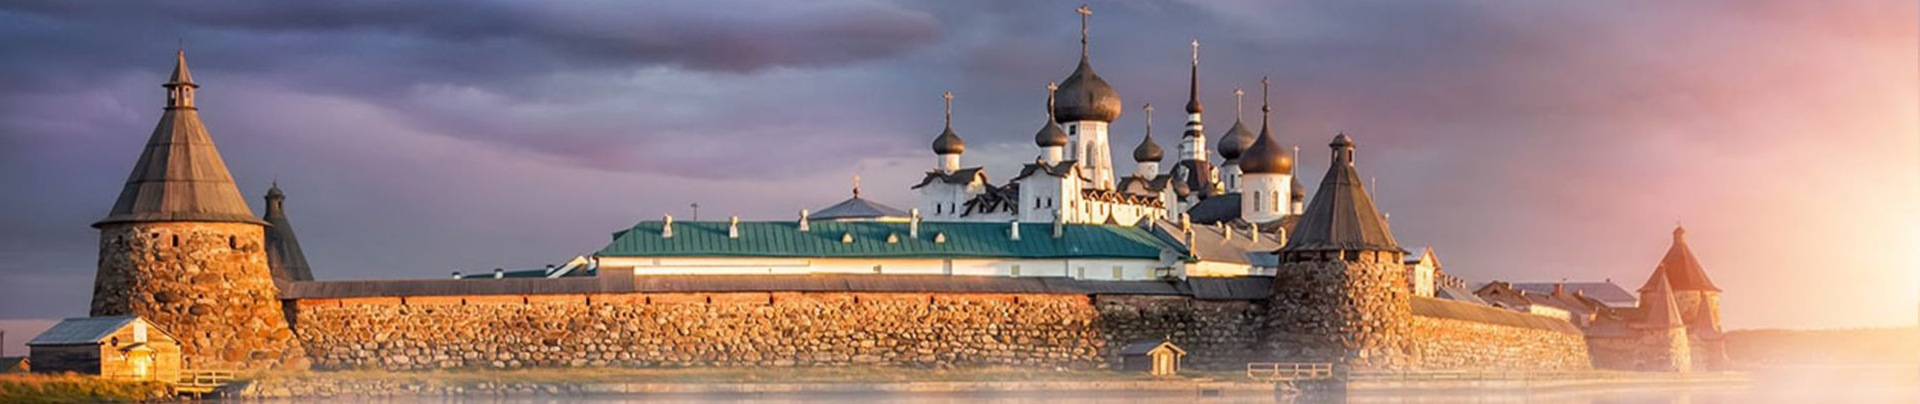 Discover hidden local gems as Russia prepares for further growth in tourism in 2017 and 2018